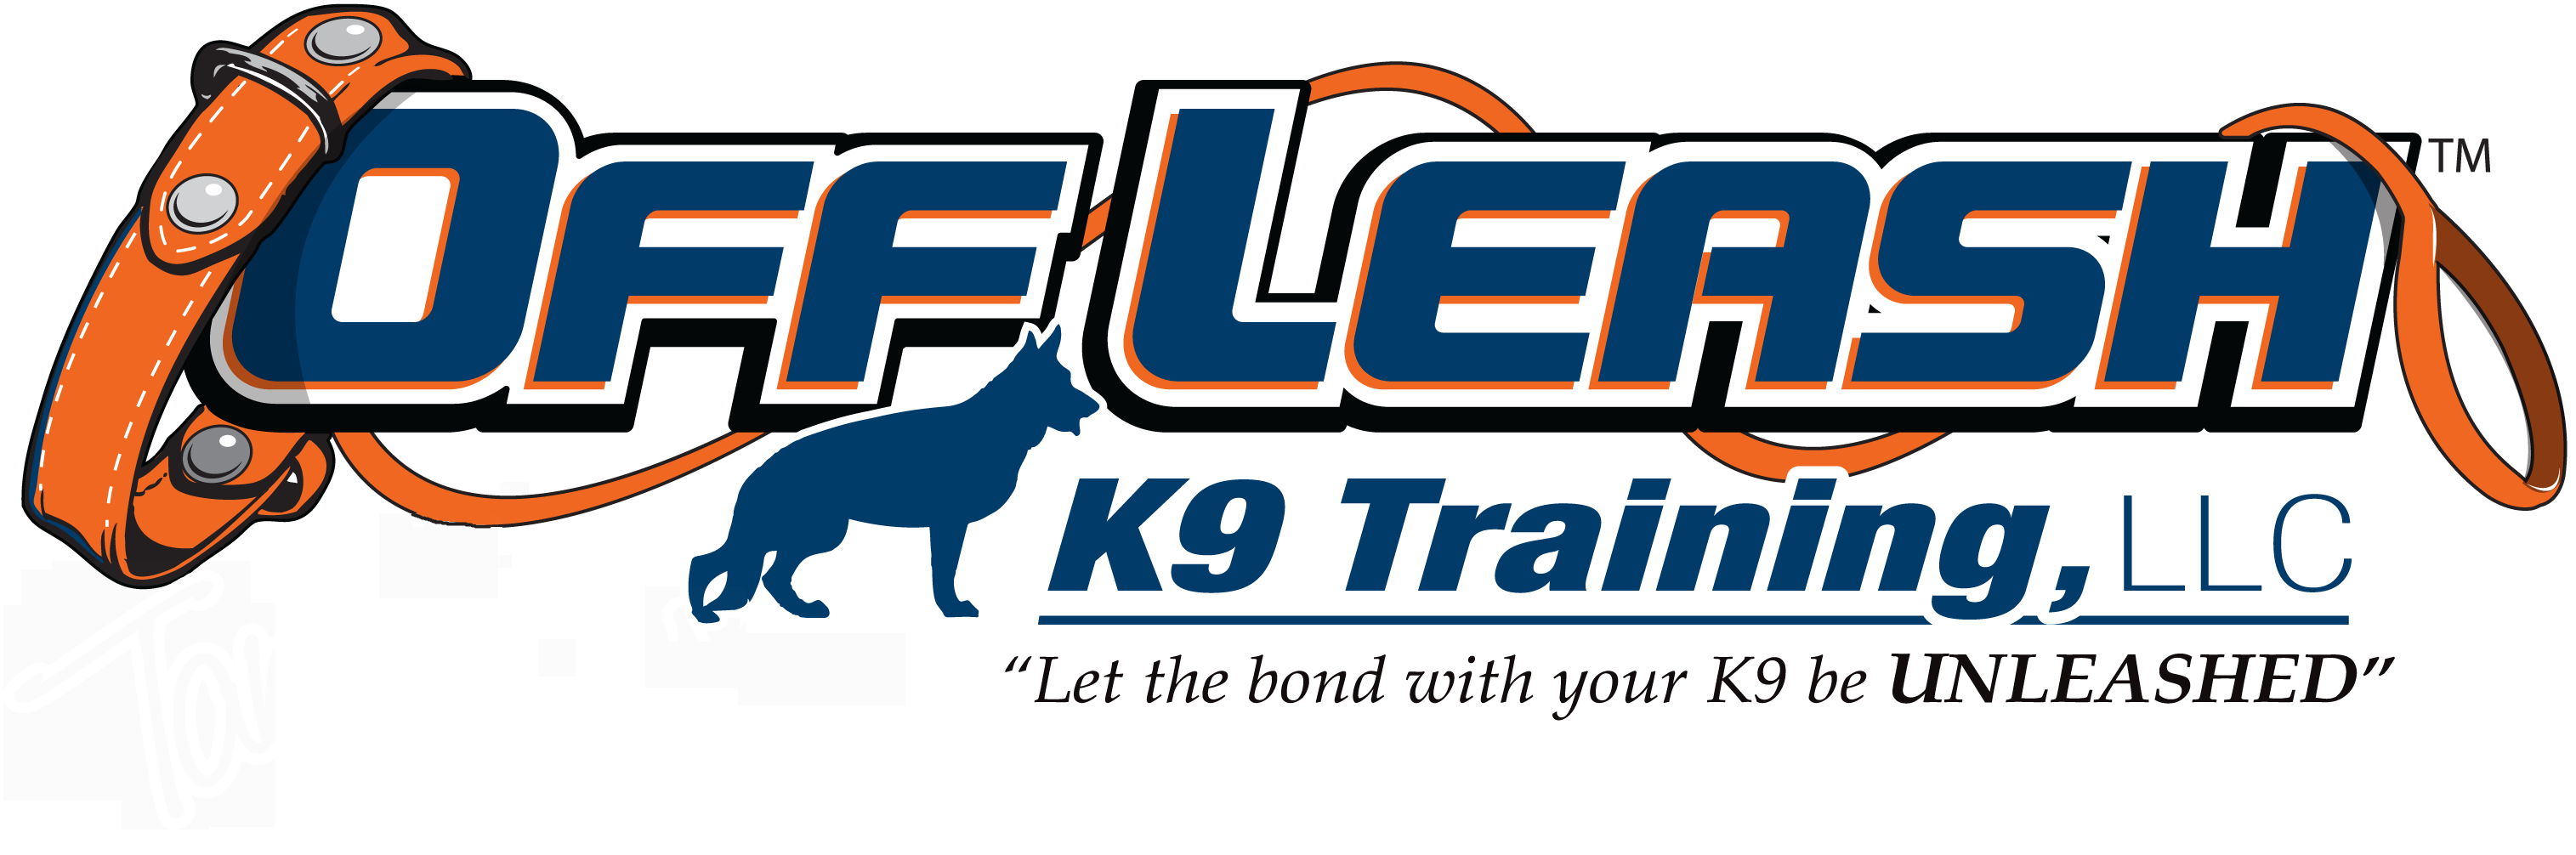 New Hampshire Offleash K9 Dog Training